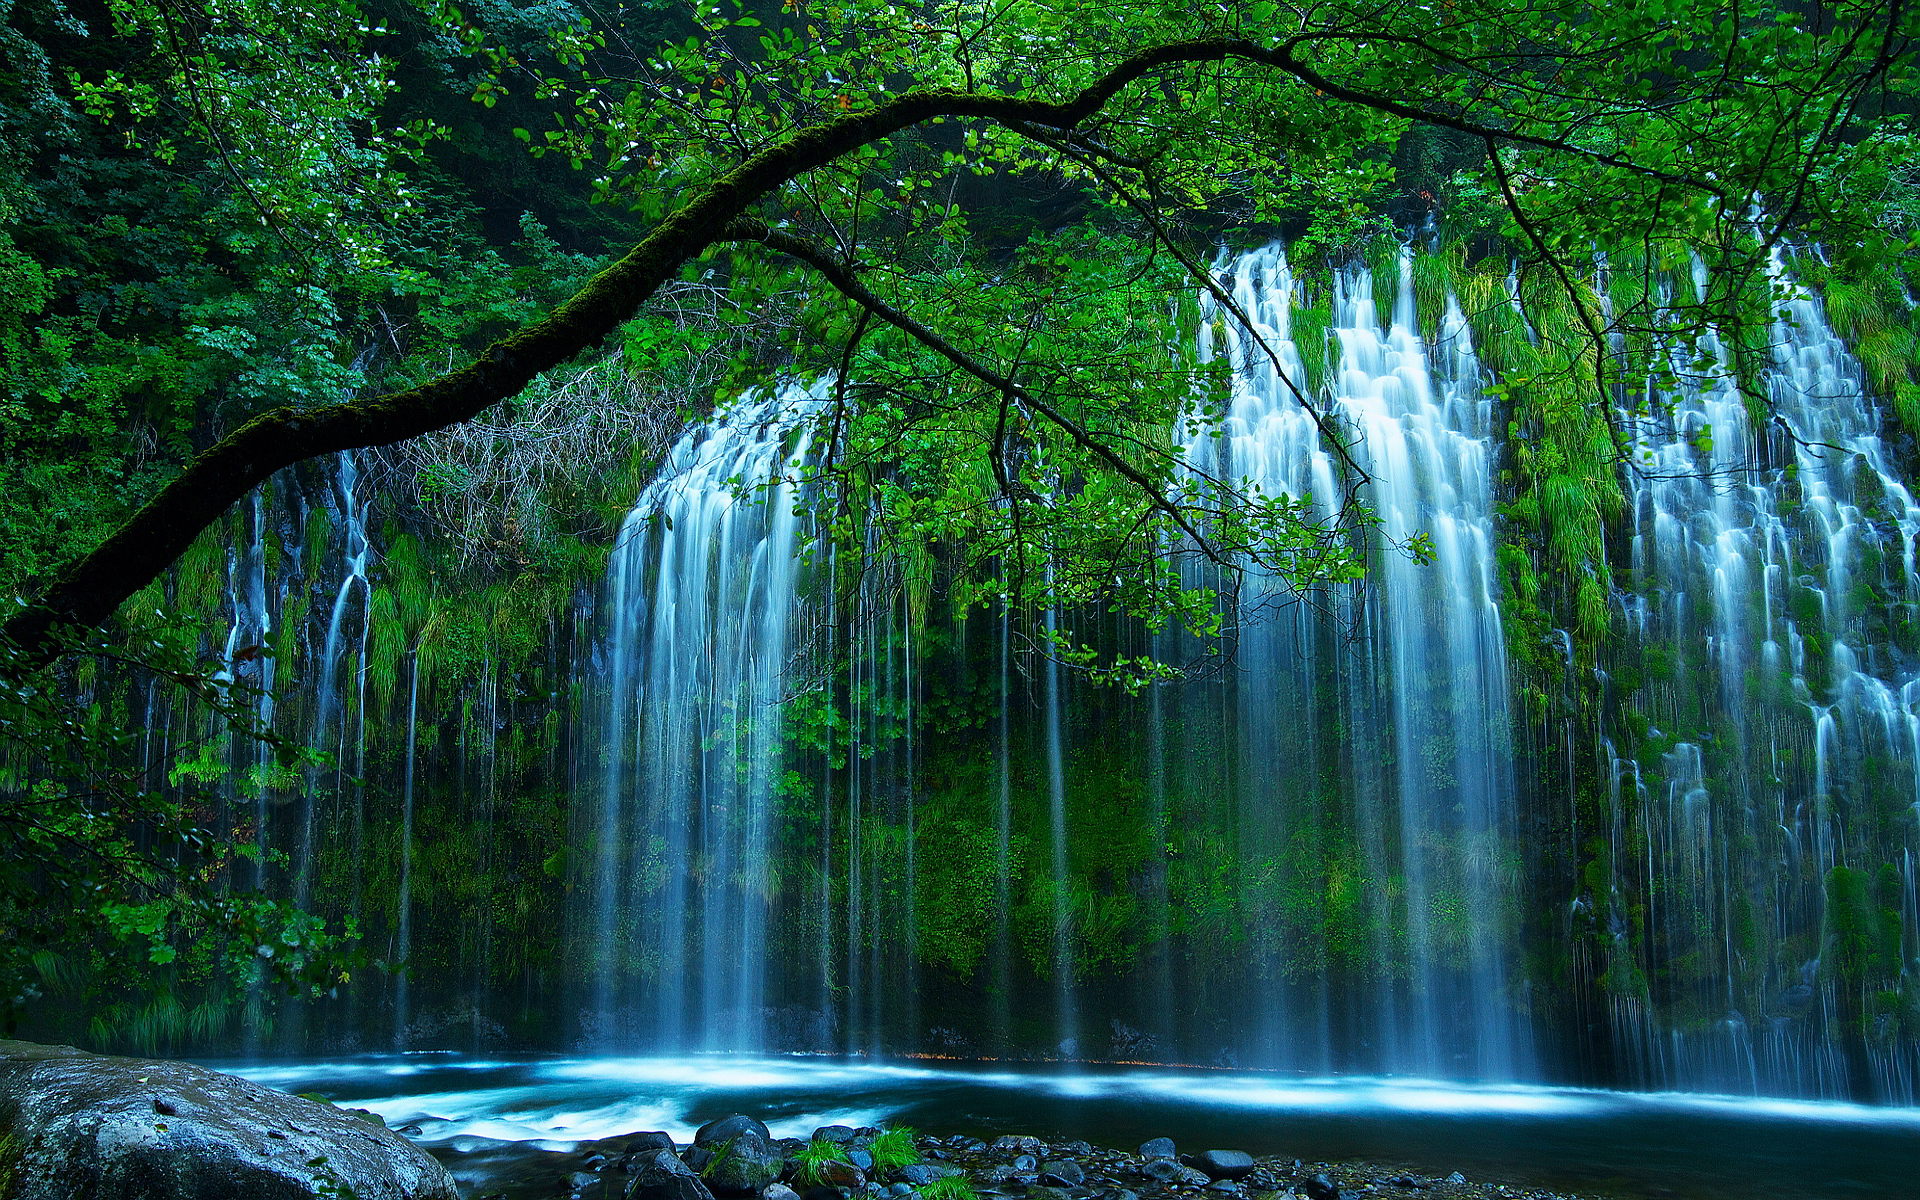 Mossbrae falls california